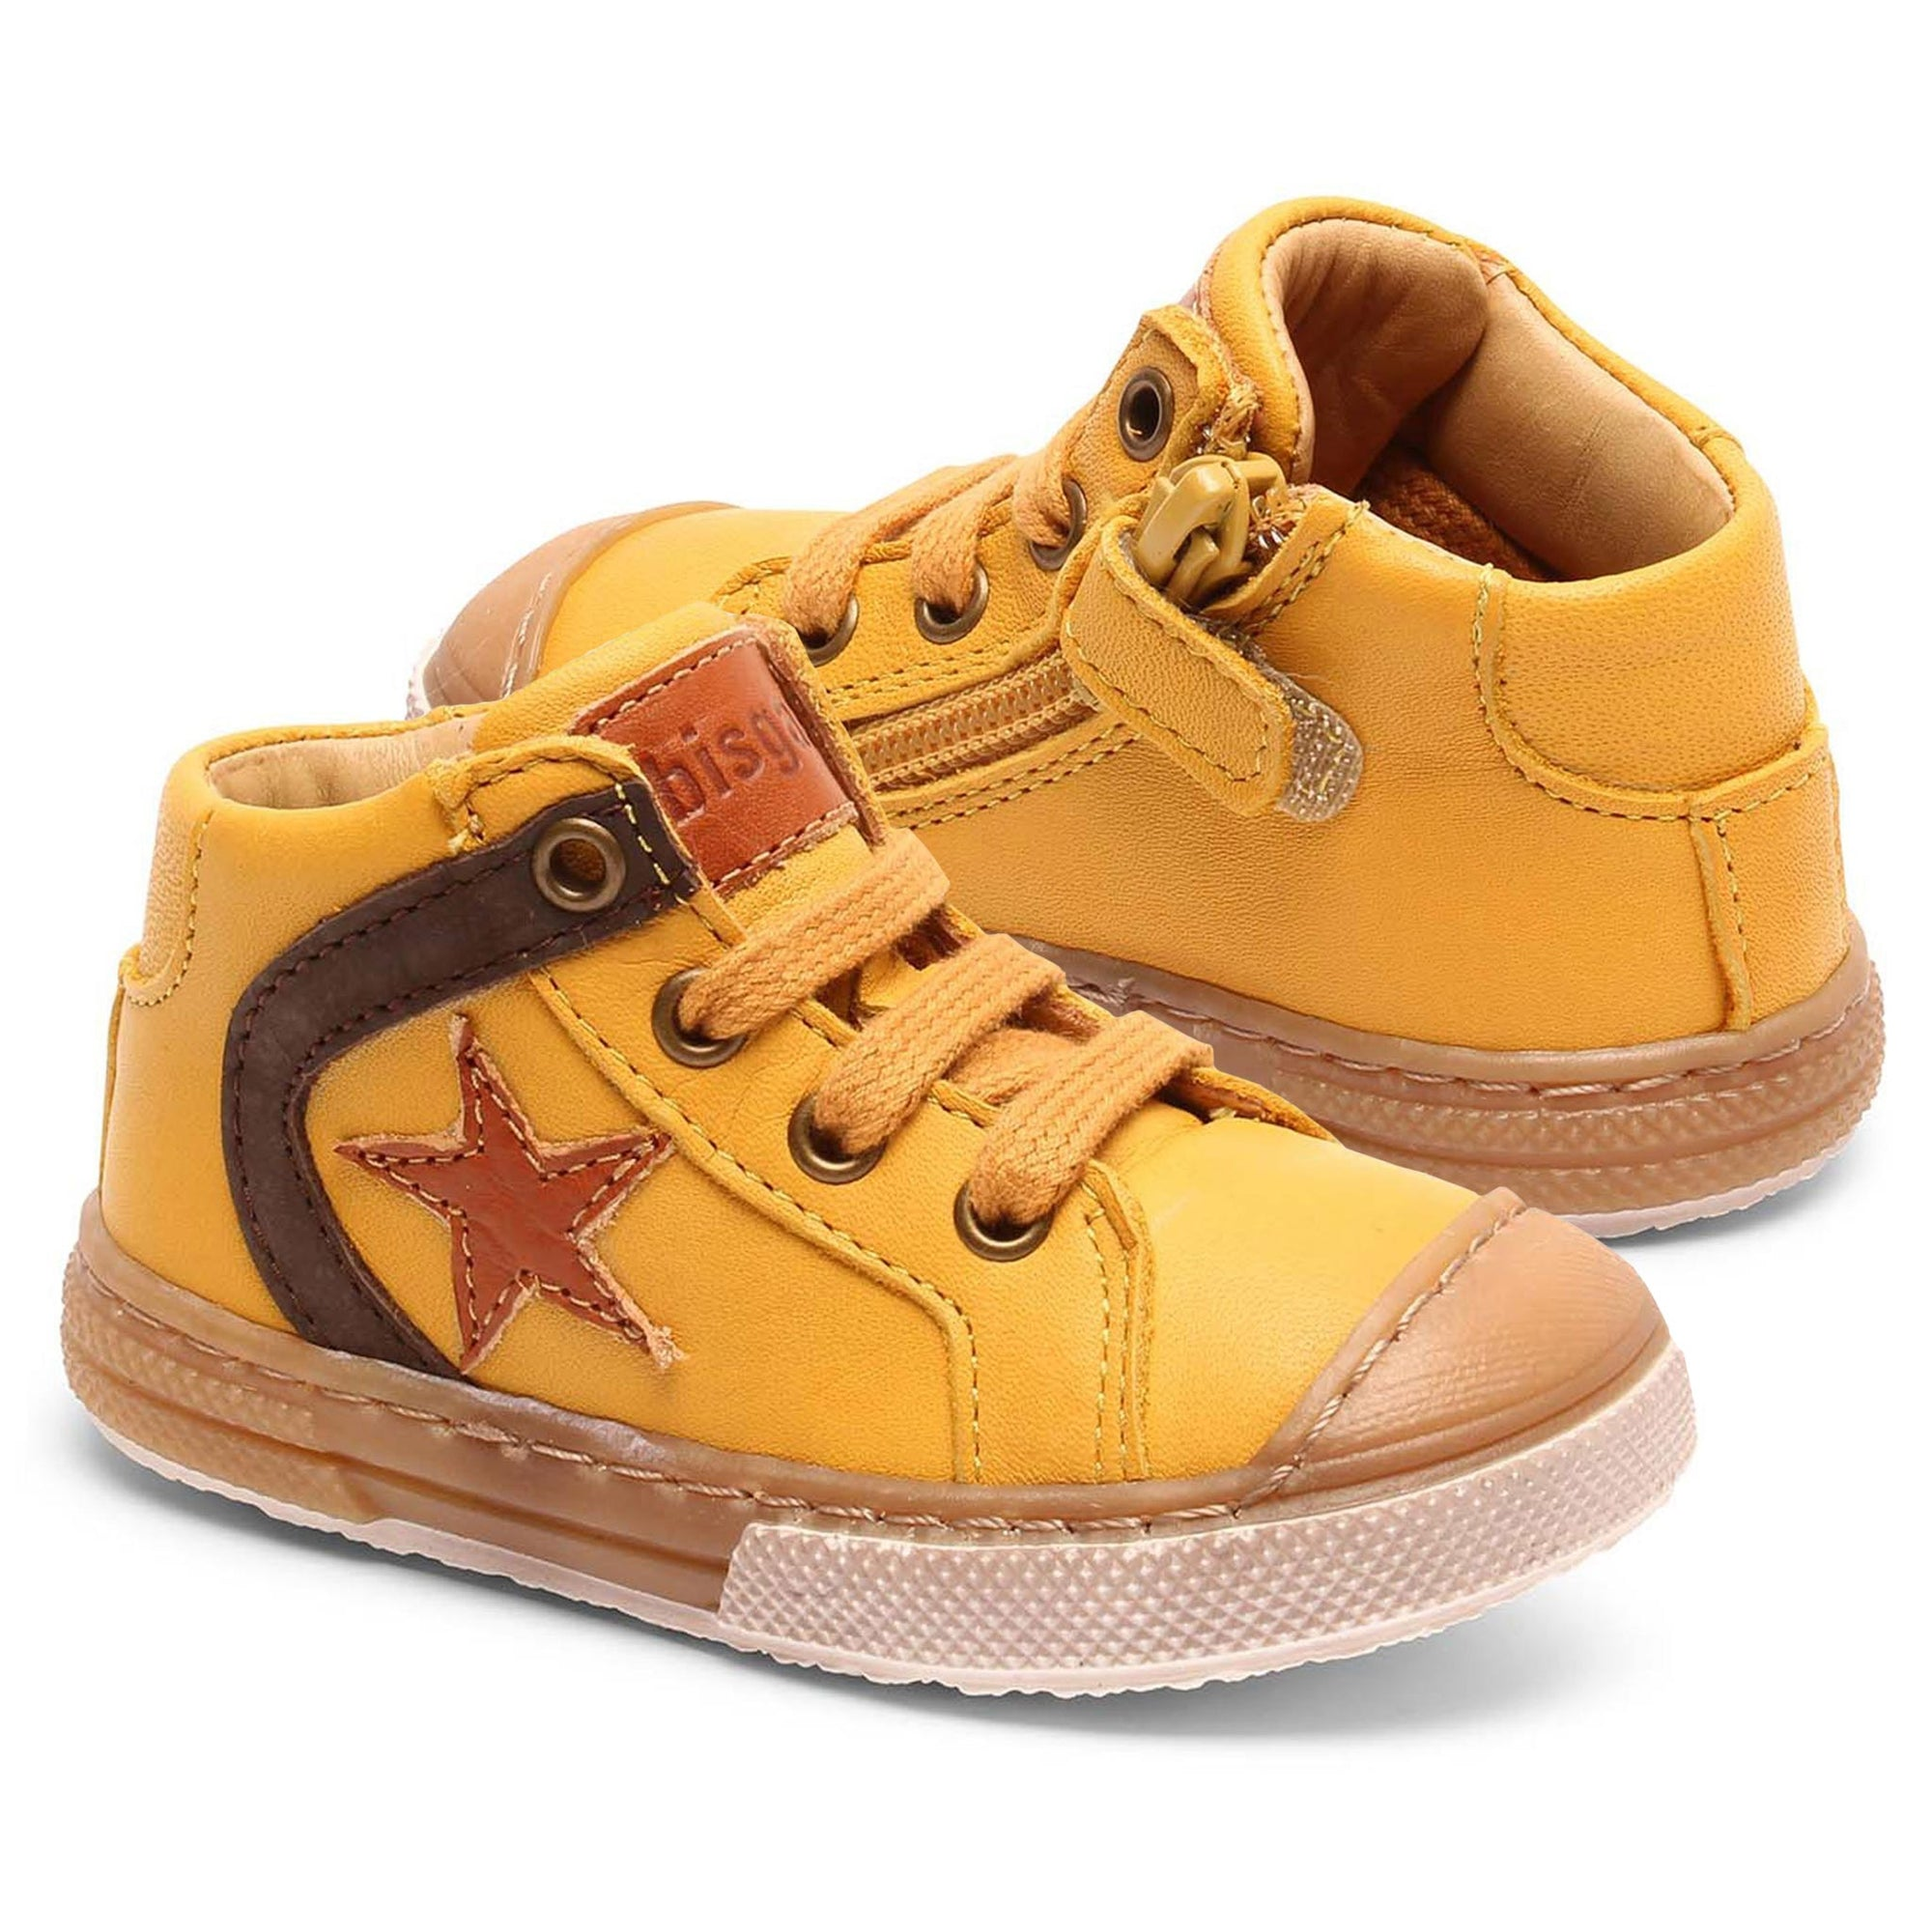 Sneakers First Step Bisgaard piele - Holger Honey-Bisgaard-HipHip.ro